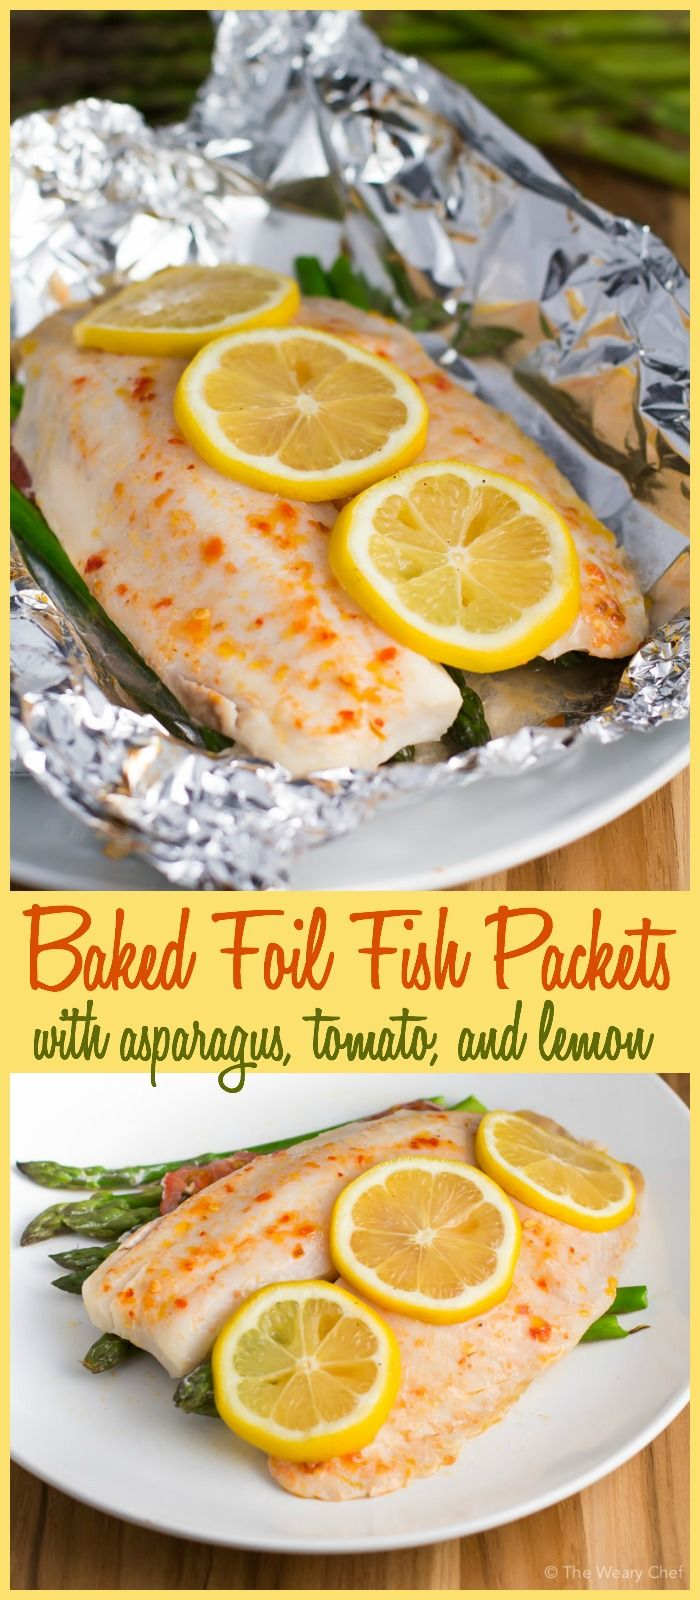 Baked Foil FIsh Packets #foodie #dan330 http://livedan330.com/2015/05/19/baked-foil-fish-packets-asparagus-tomato/